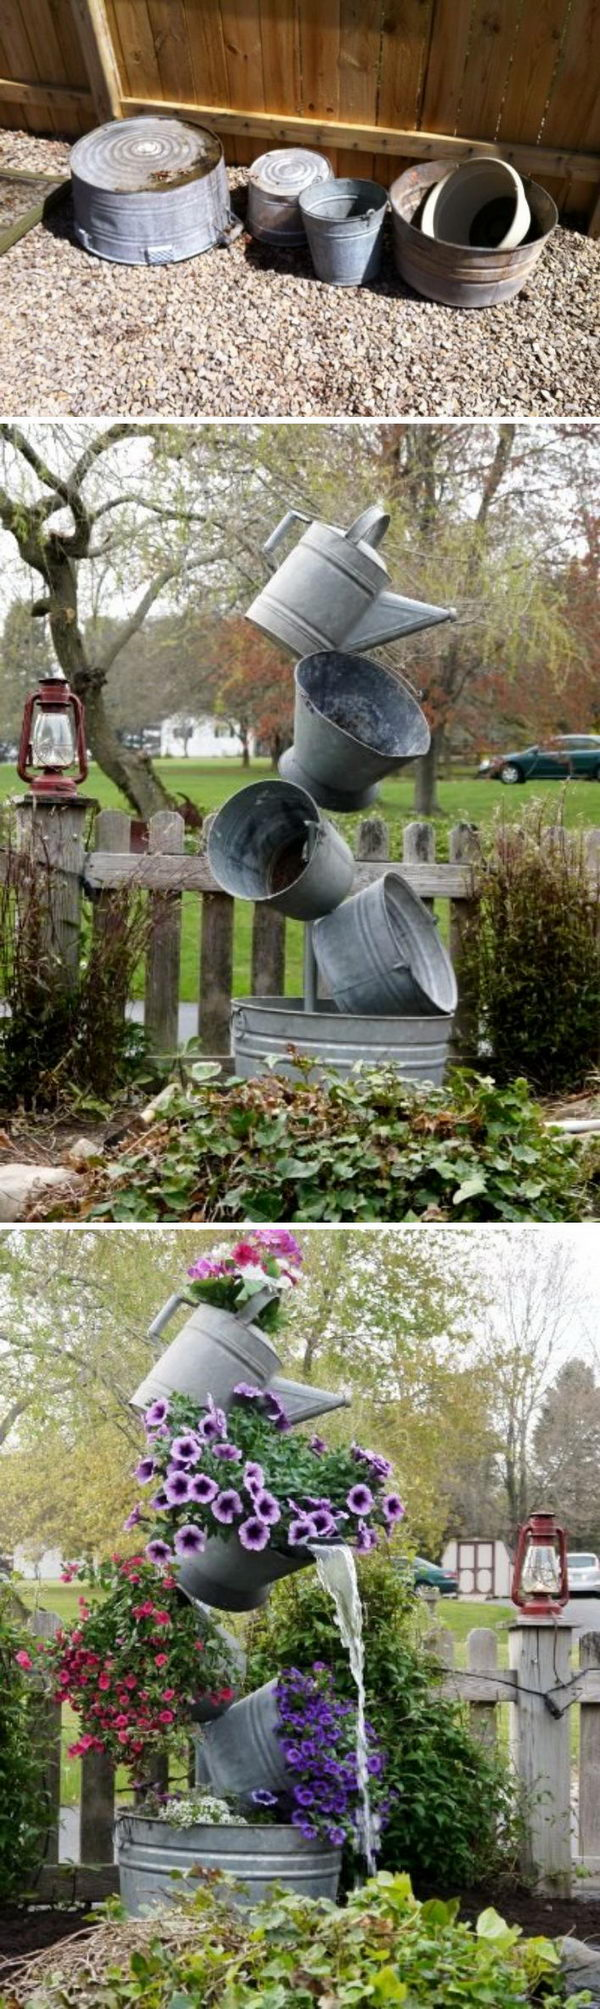 DIY Flower Tower Combining Tipsy Planters and Garden Fountains.